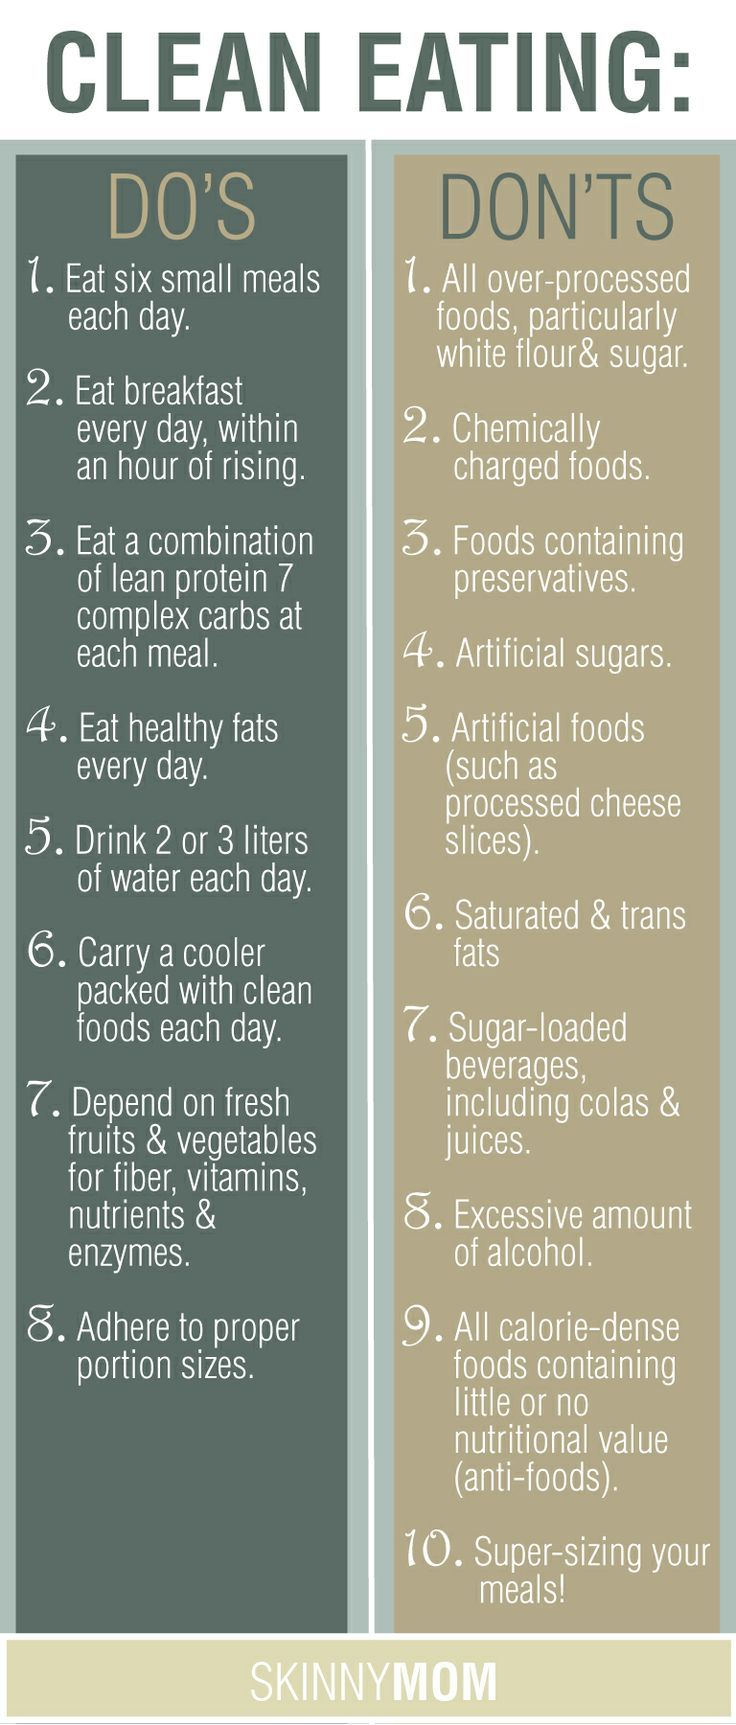 Detox Tips: Clean eating broken down to the core. its so easy if you pay attention to what you're eating.